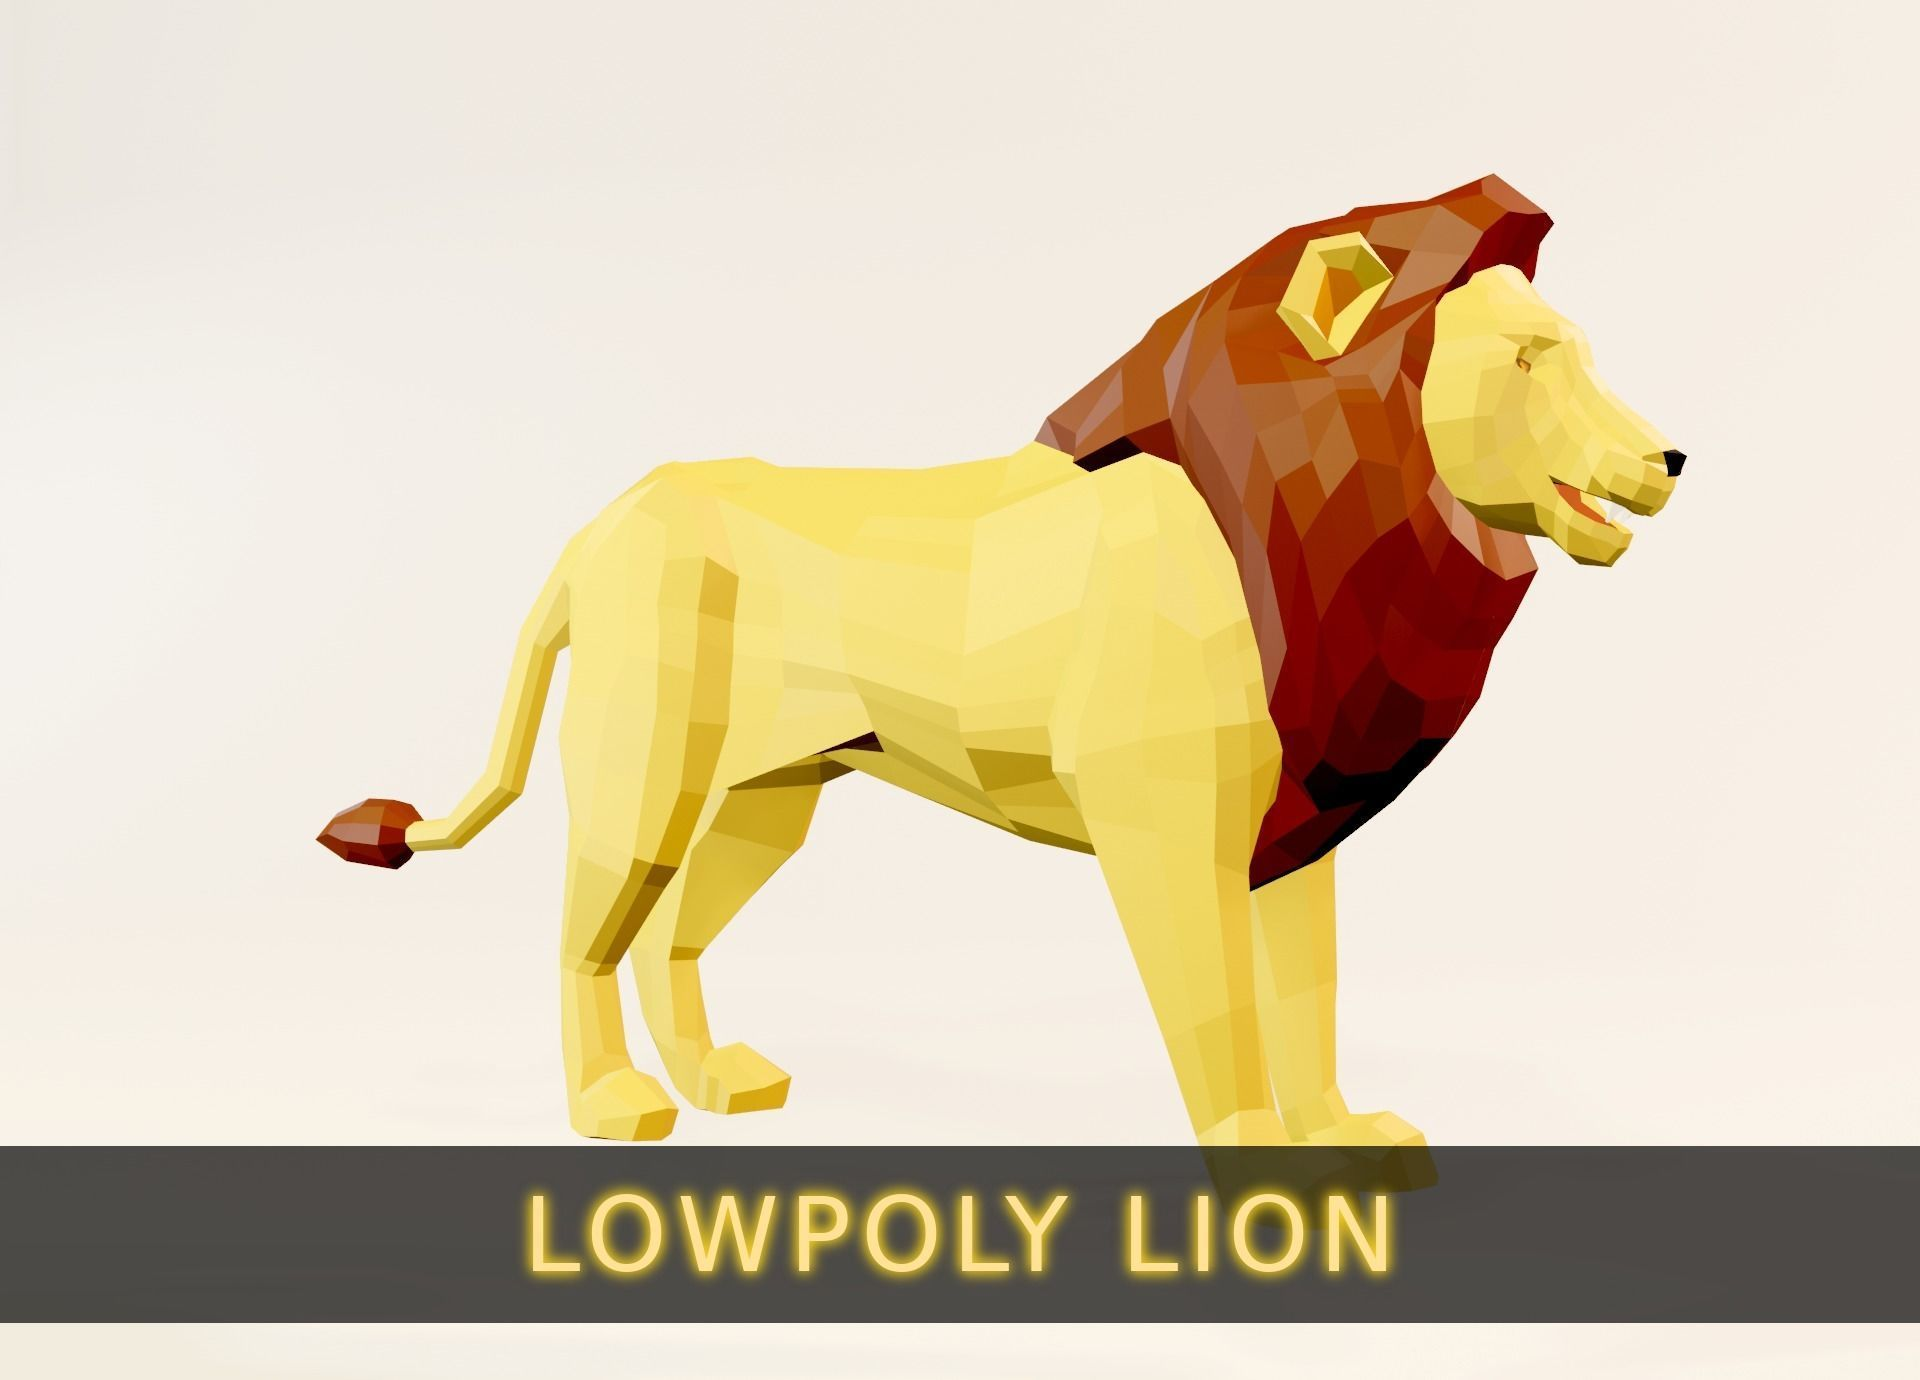 Lowpoly Animated Lion